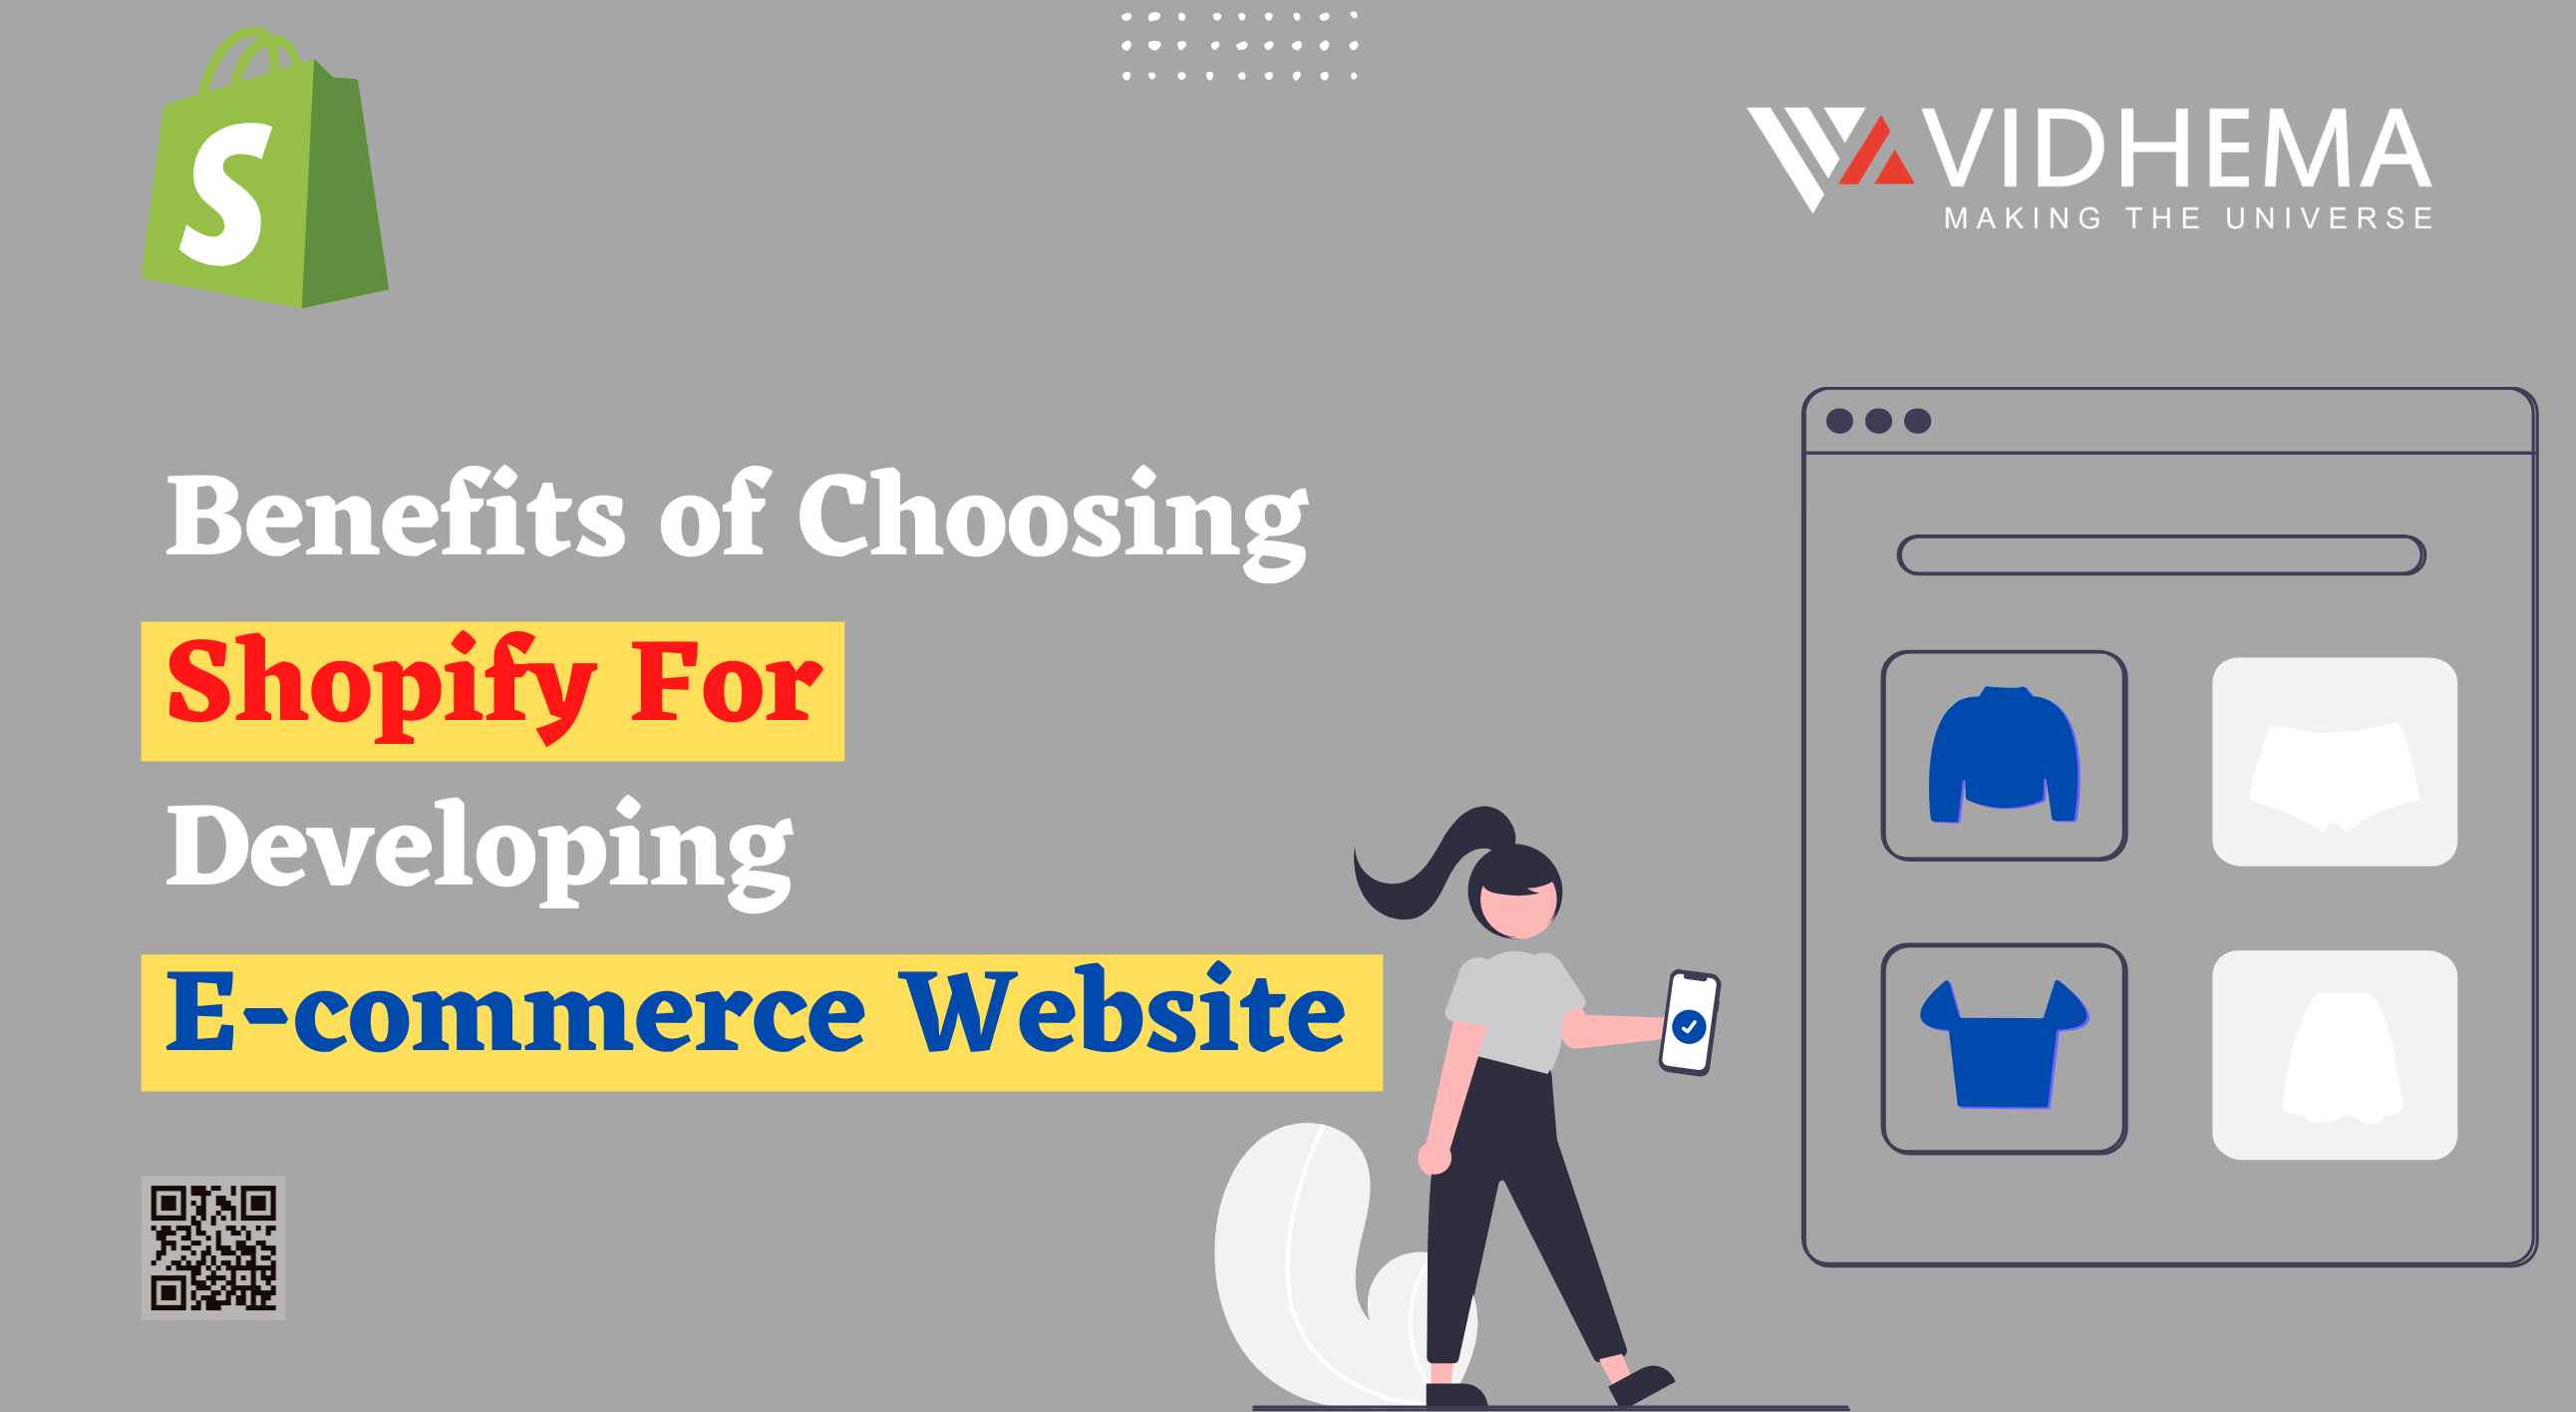 Benefits of Choosing Shopify For Developing E-commerce Website